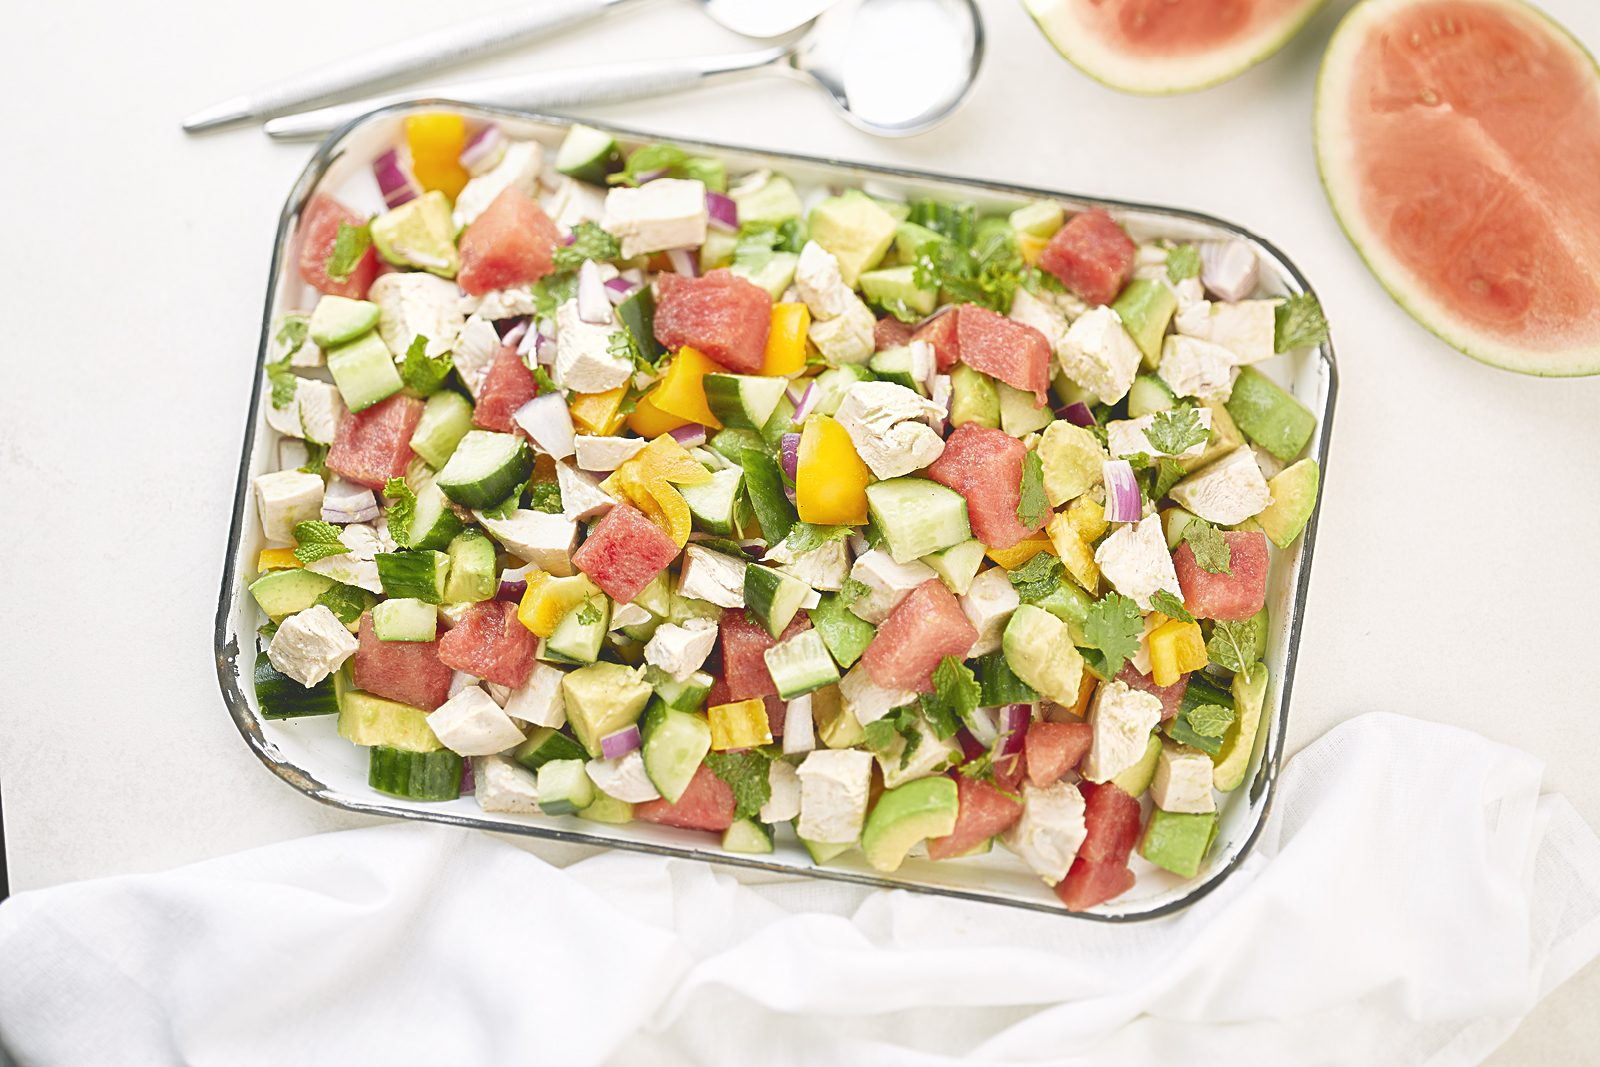 CHICKEN MELON & AVOCADO SALAD